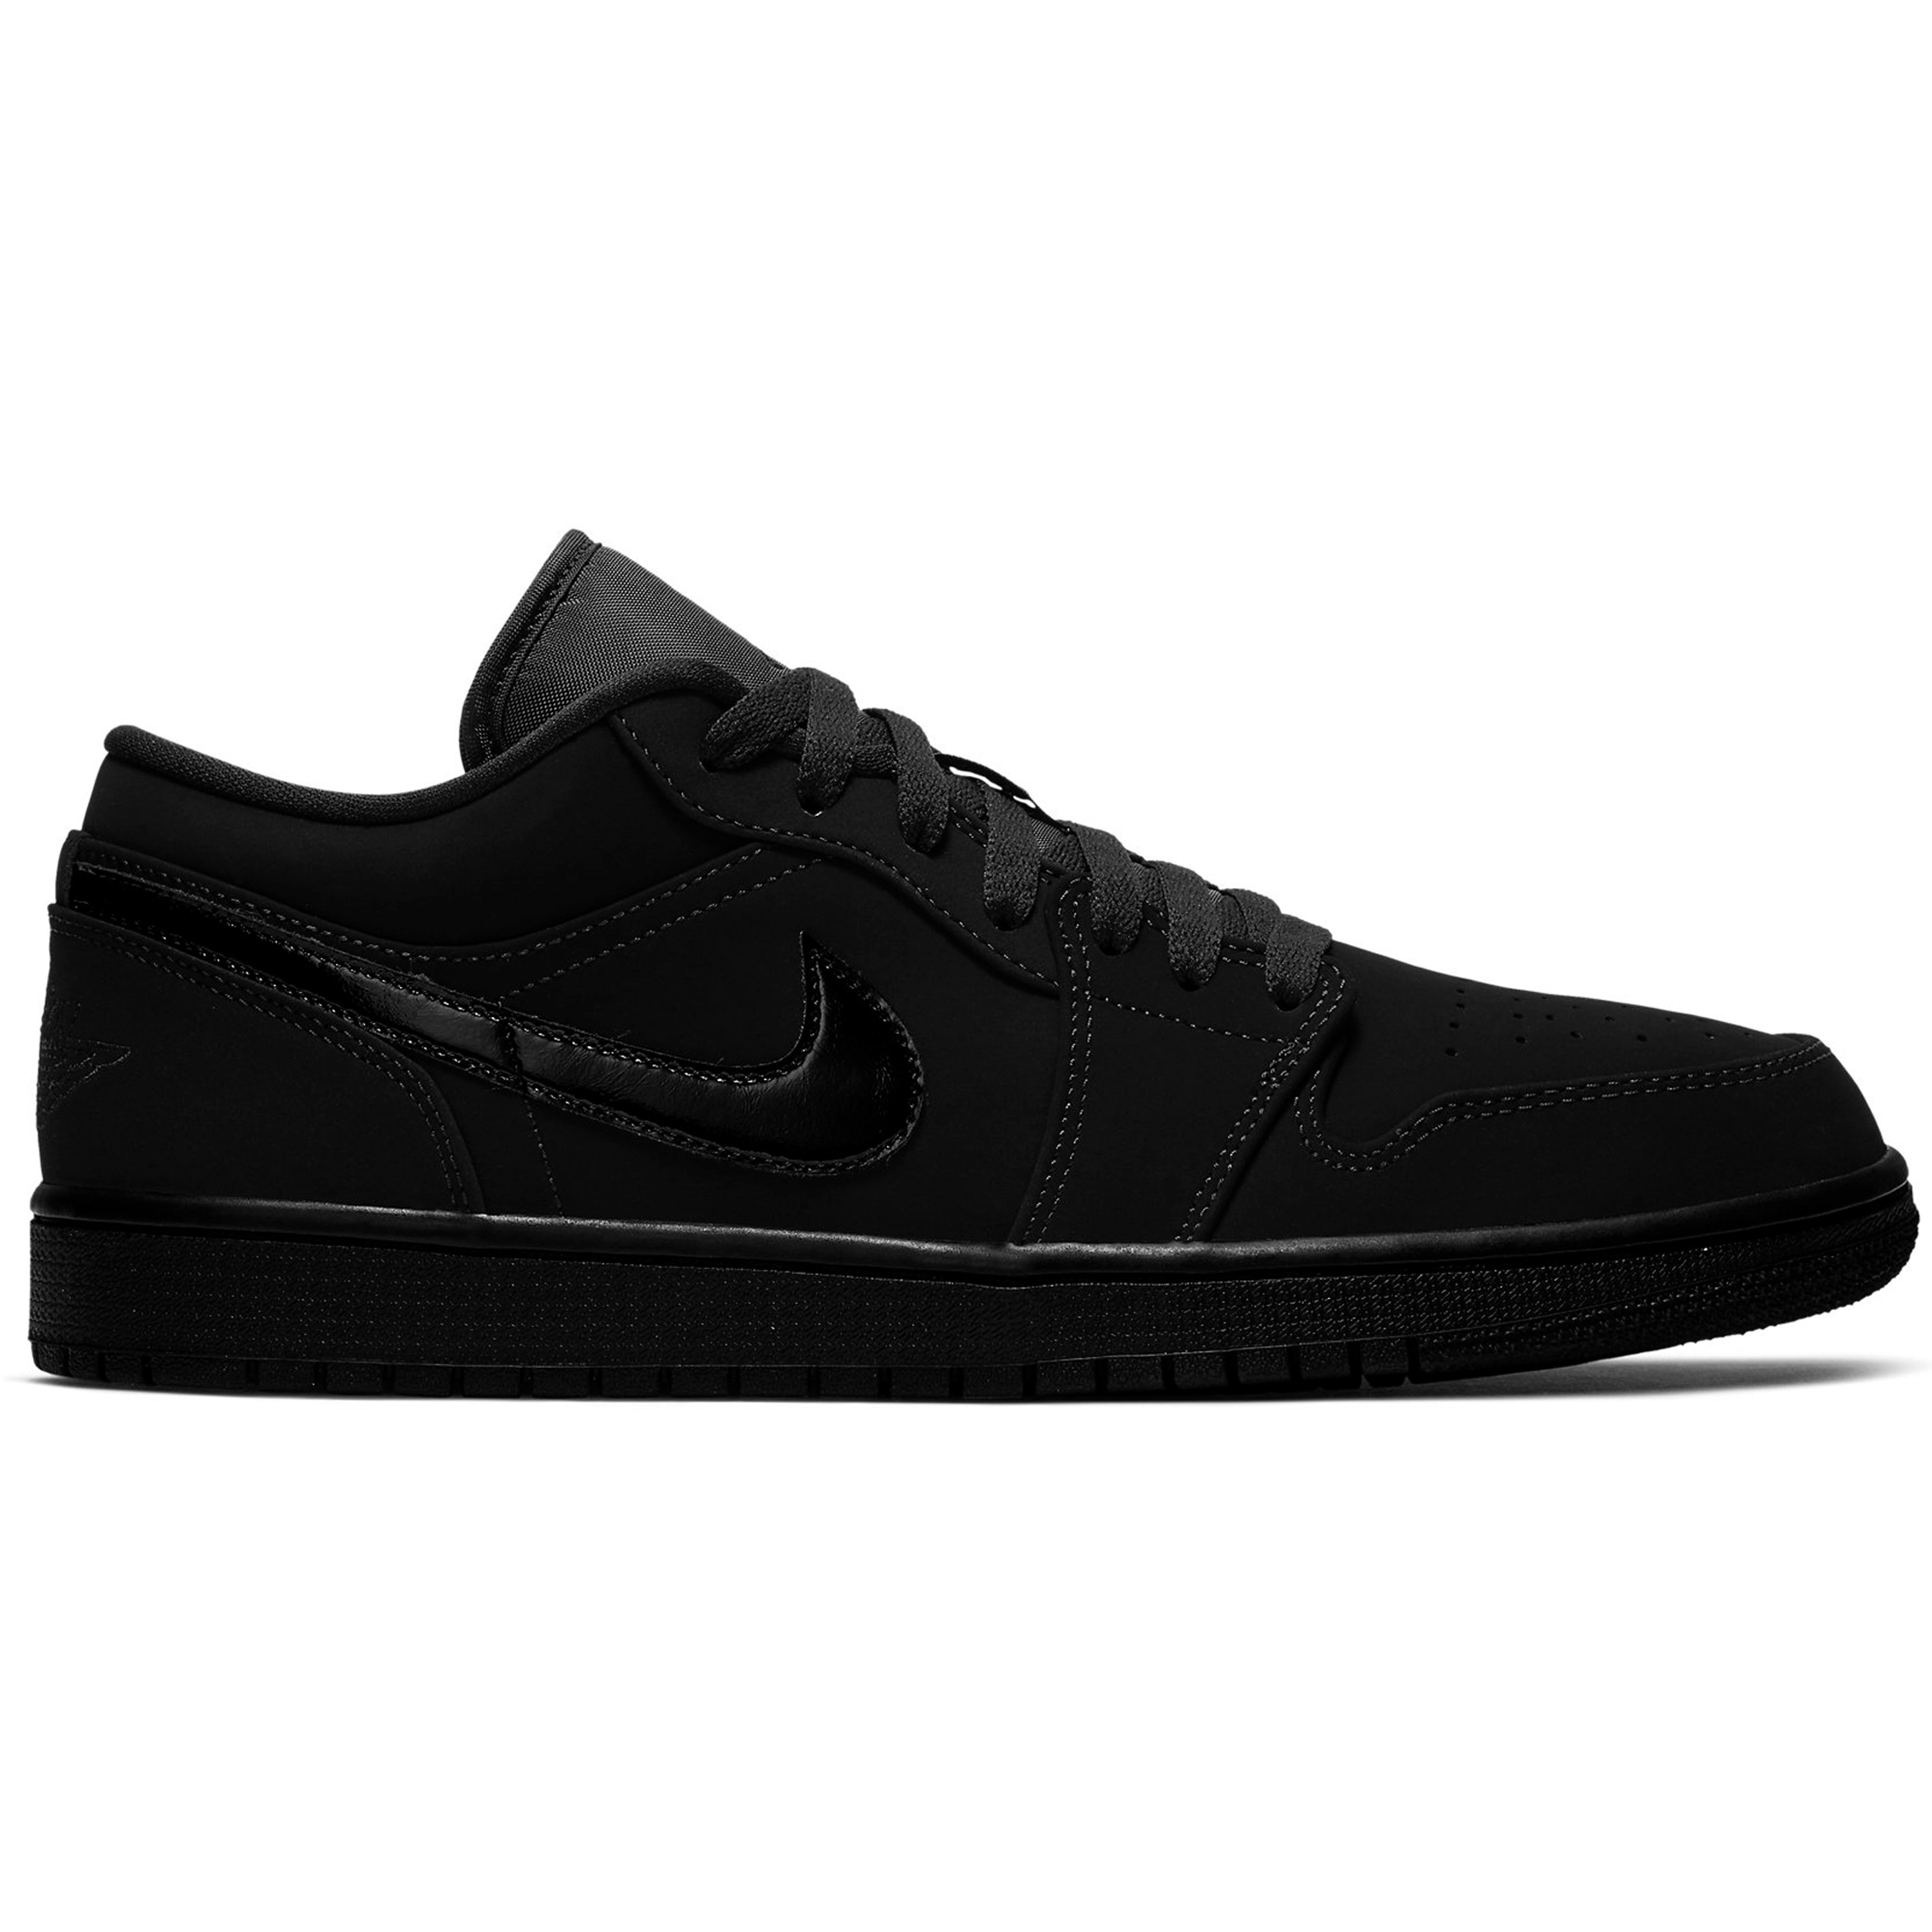 Jordan 1 Low Triple Black (2019) (553558-056)